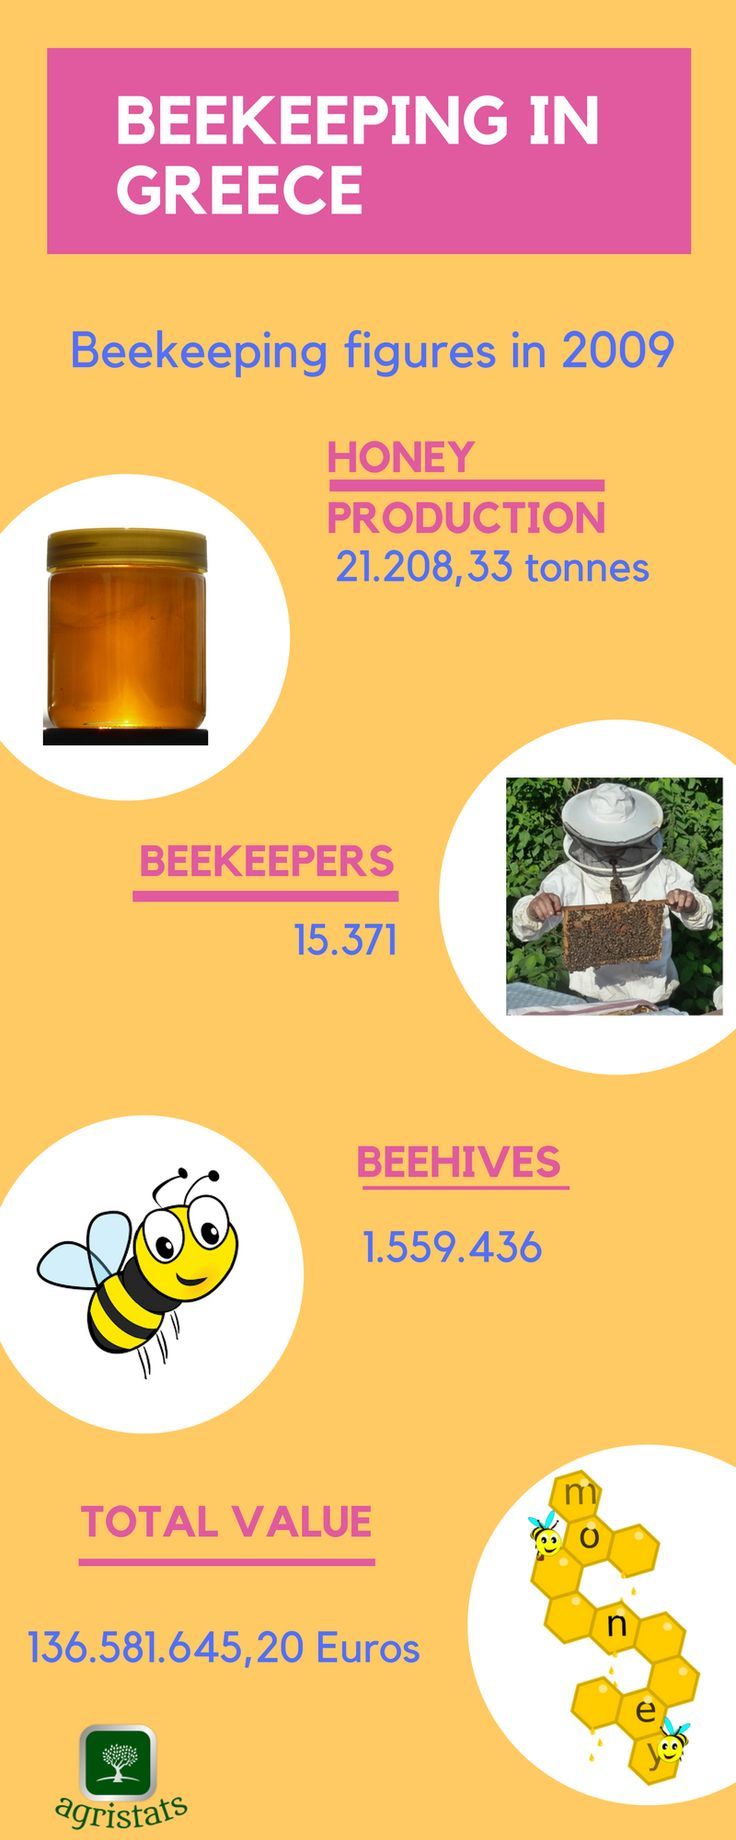 Beekeeping in Greece